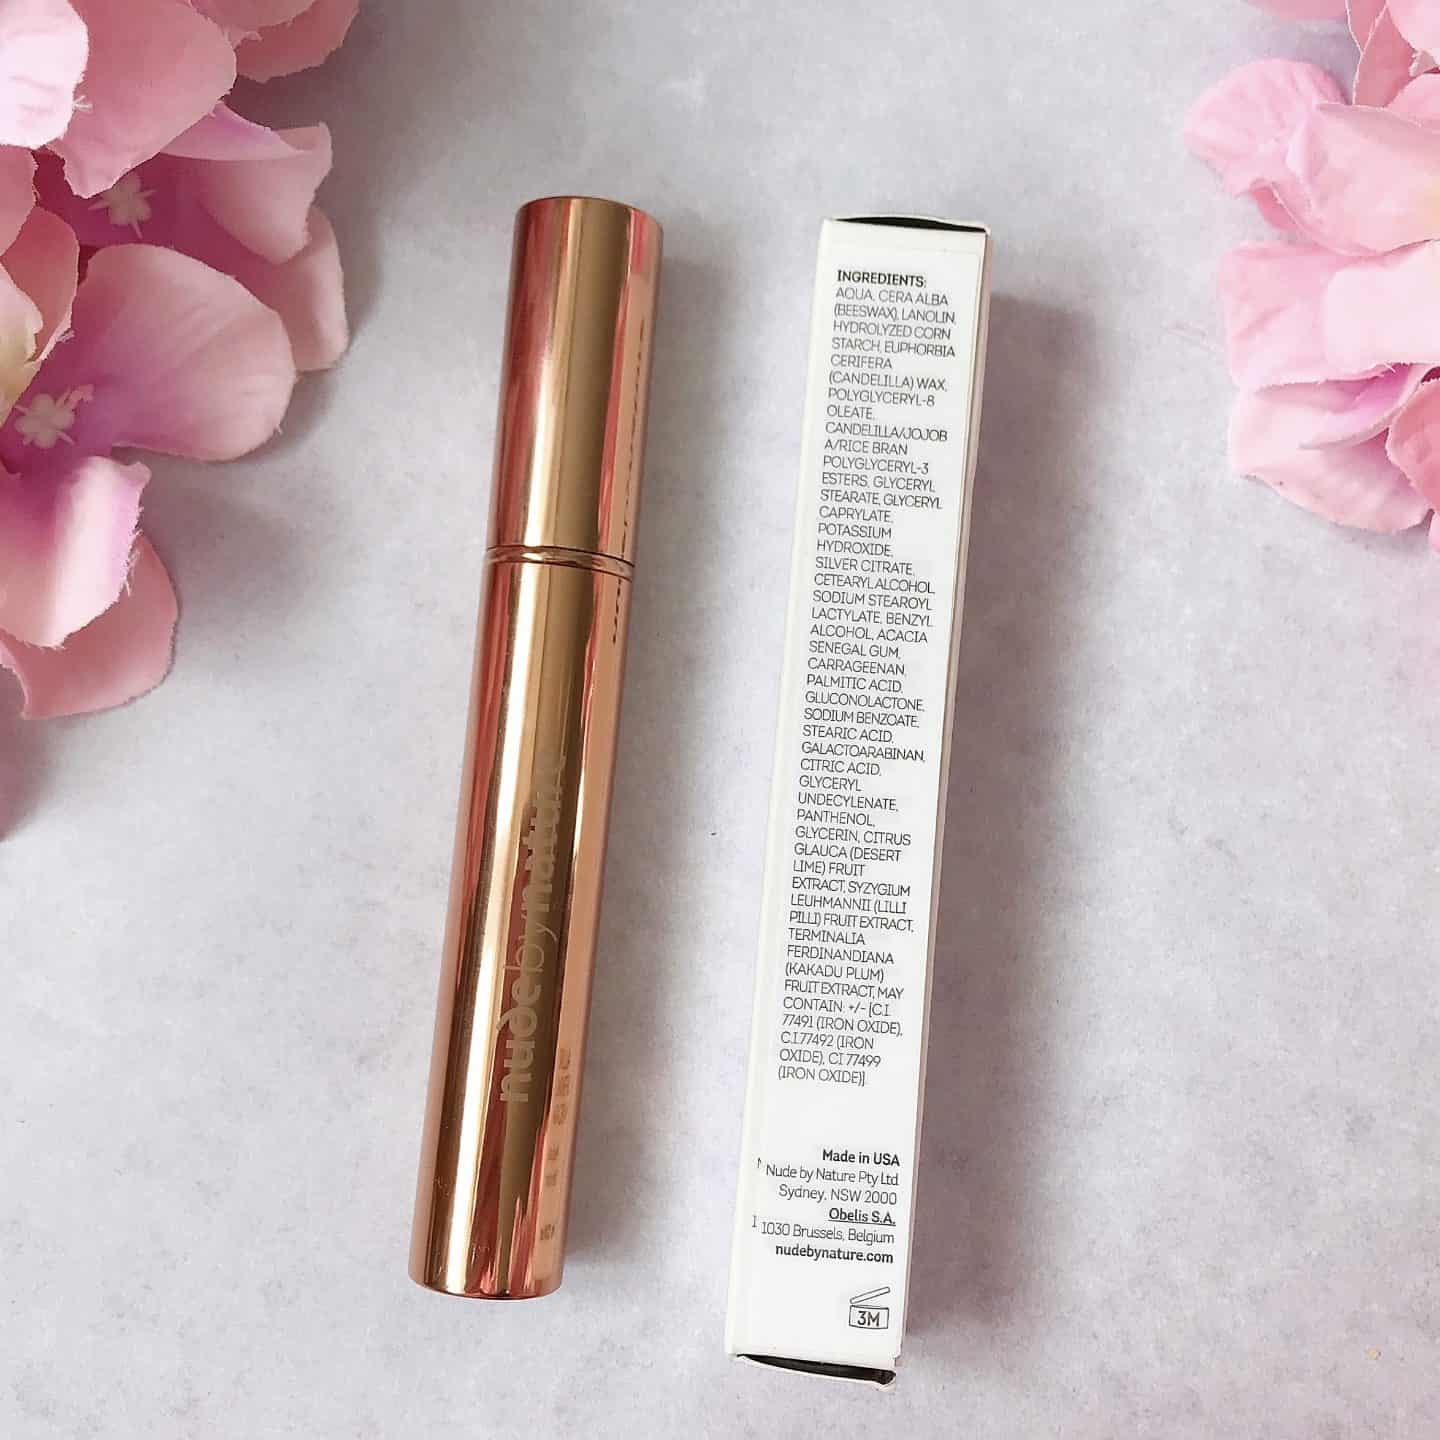 Nude by Nature Allure Defining Mascara ingredients.